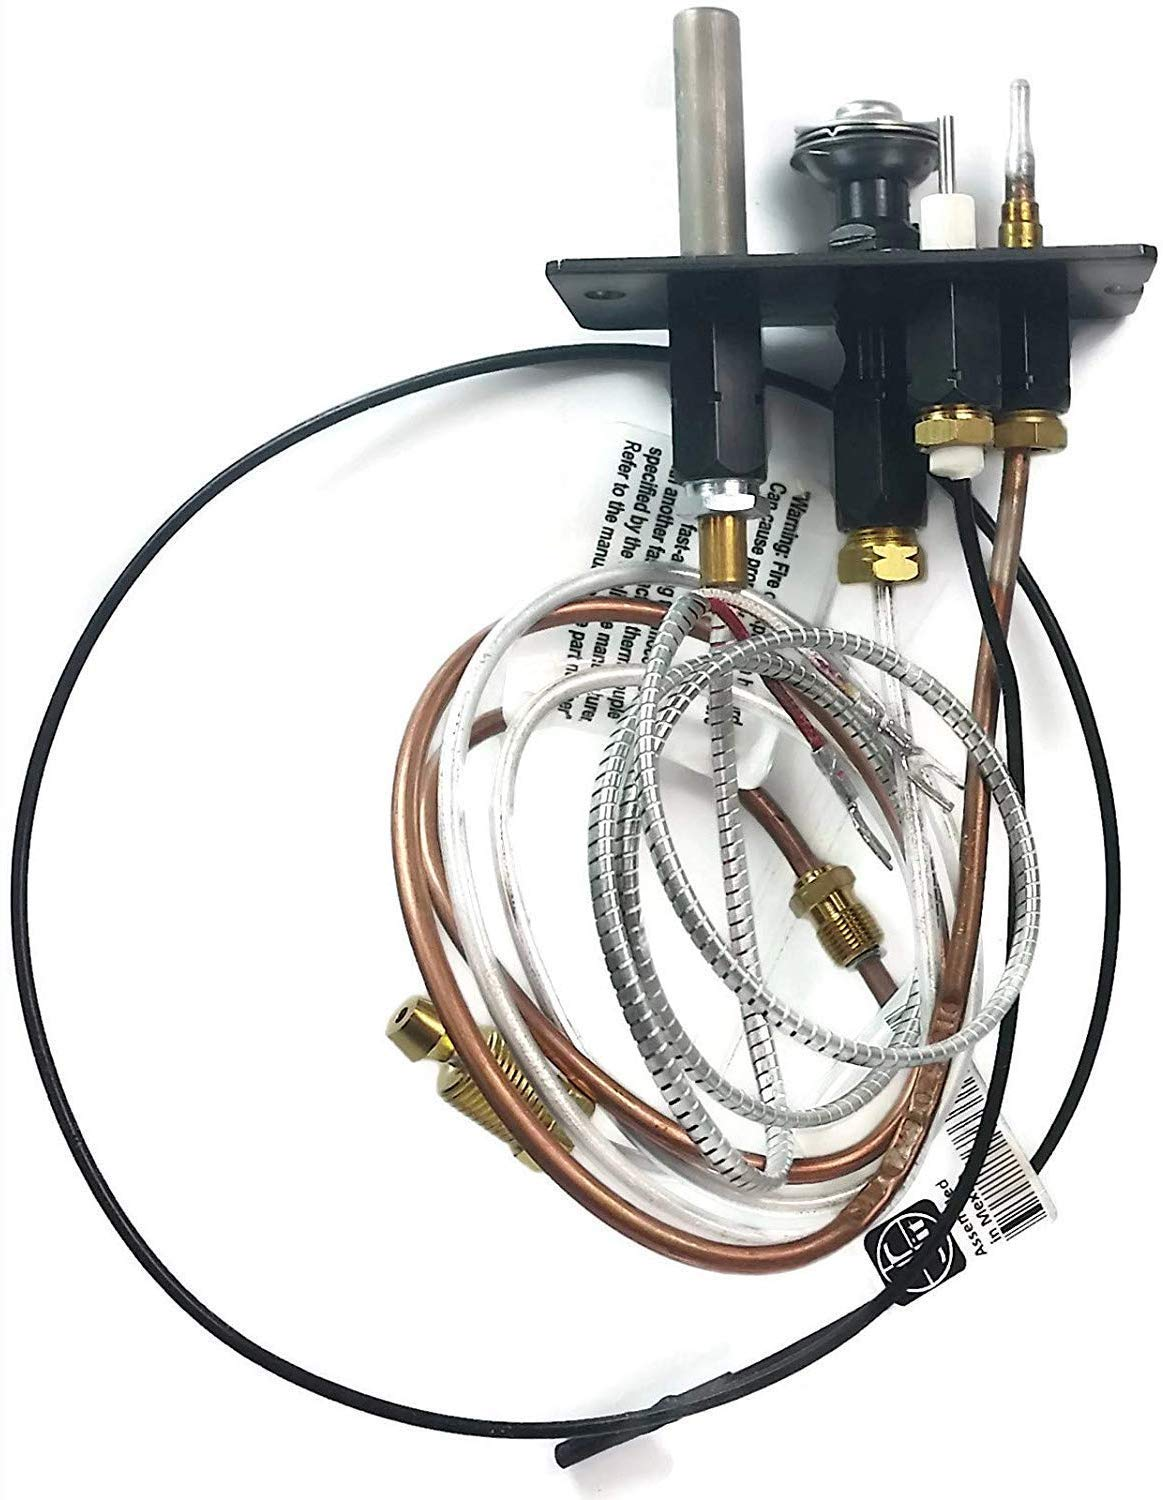 Propane Gas - SRV10002265 - Replacement 3 Way Pilot Assembly for HHT/Majestic/Monessen Propane Gas Fireplaces by HHT - Hearth and Home Technologies, Inc.